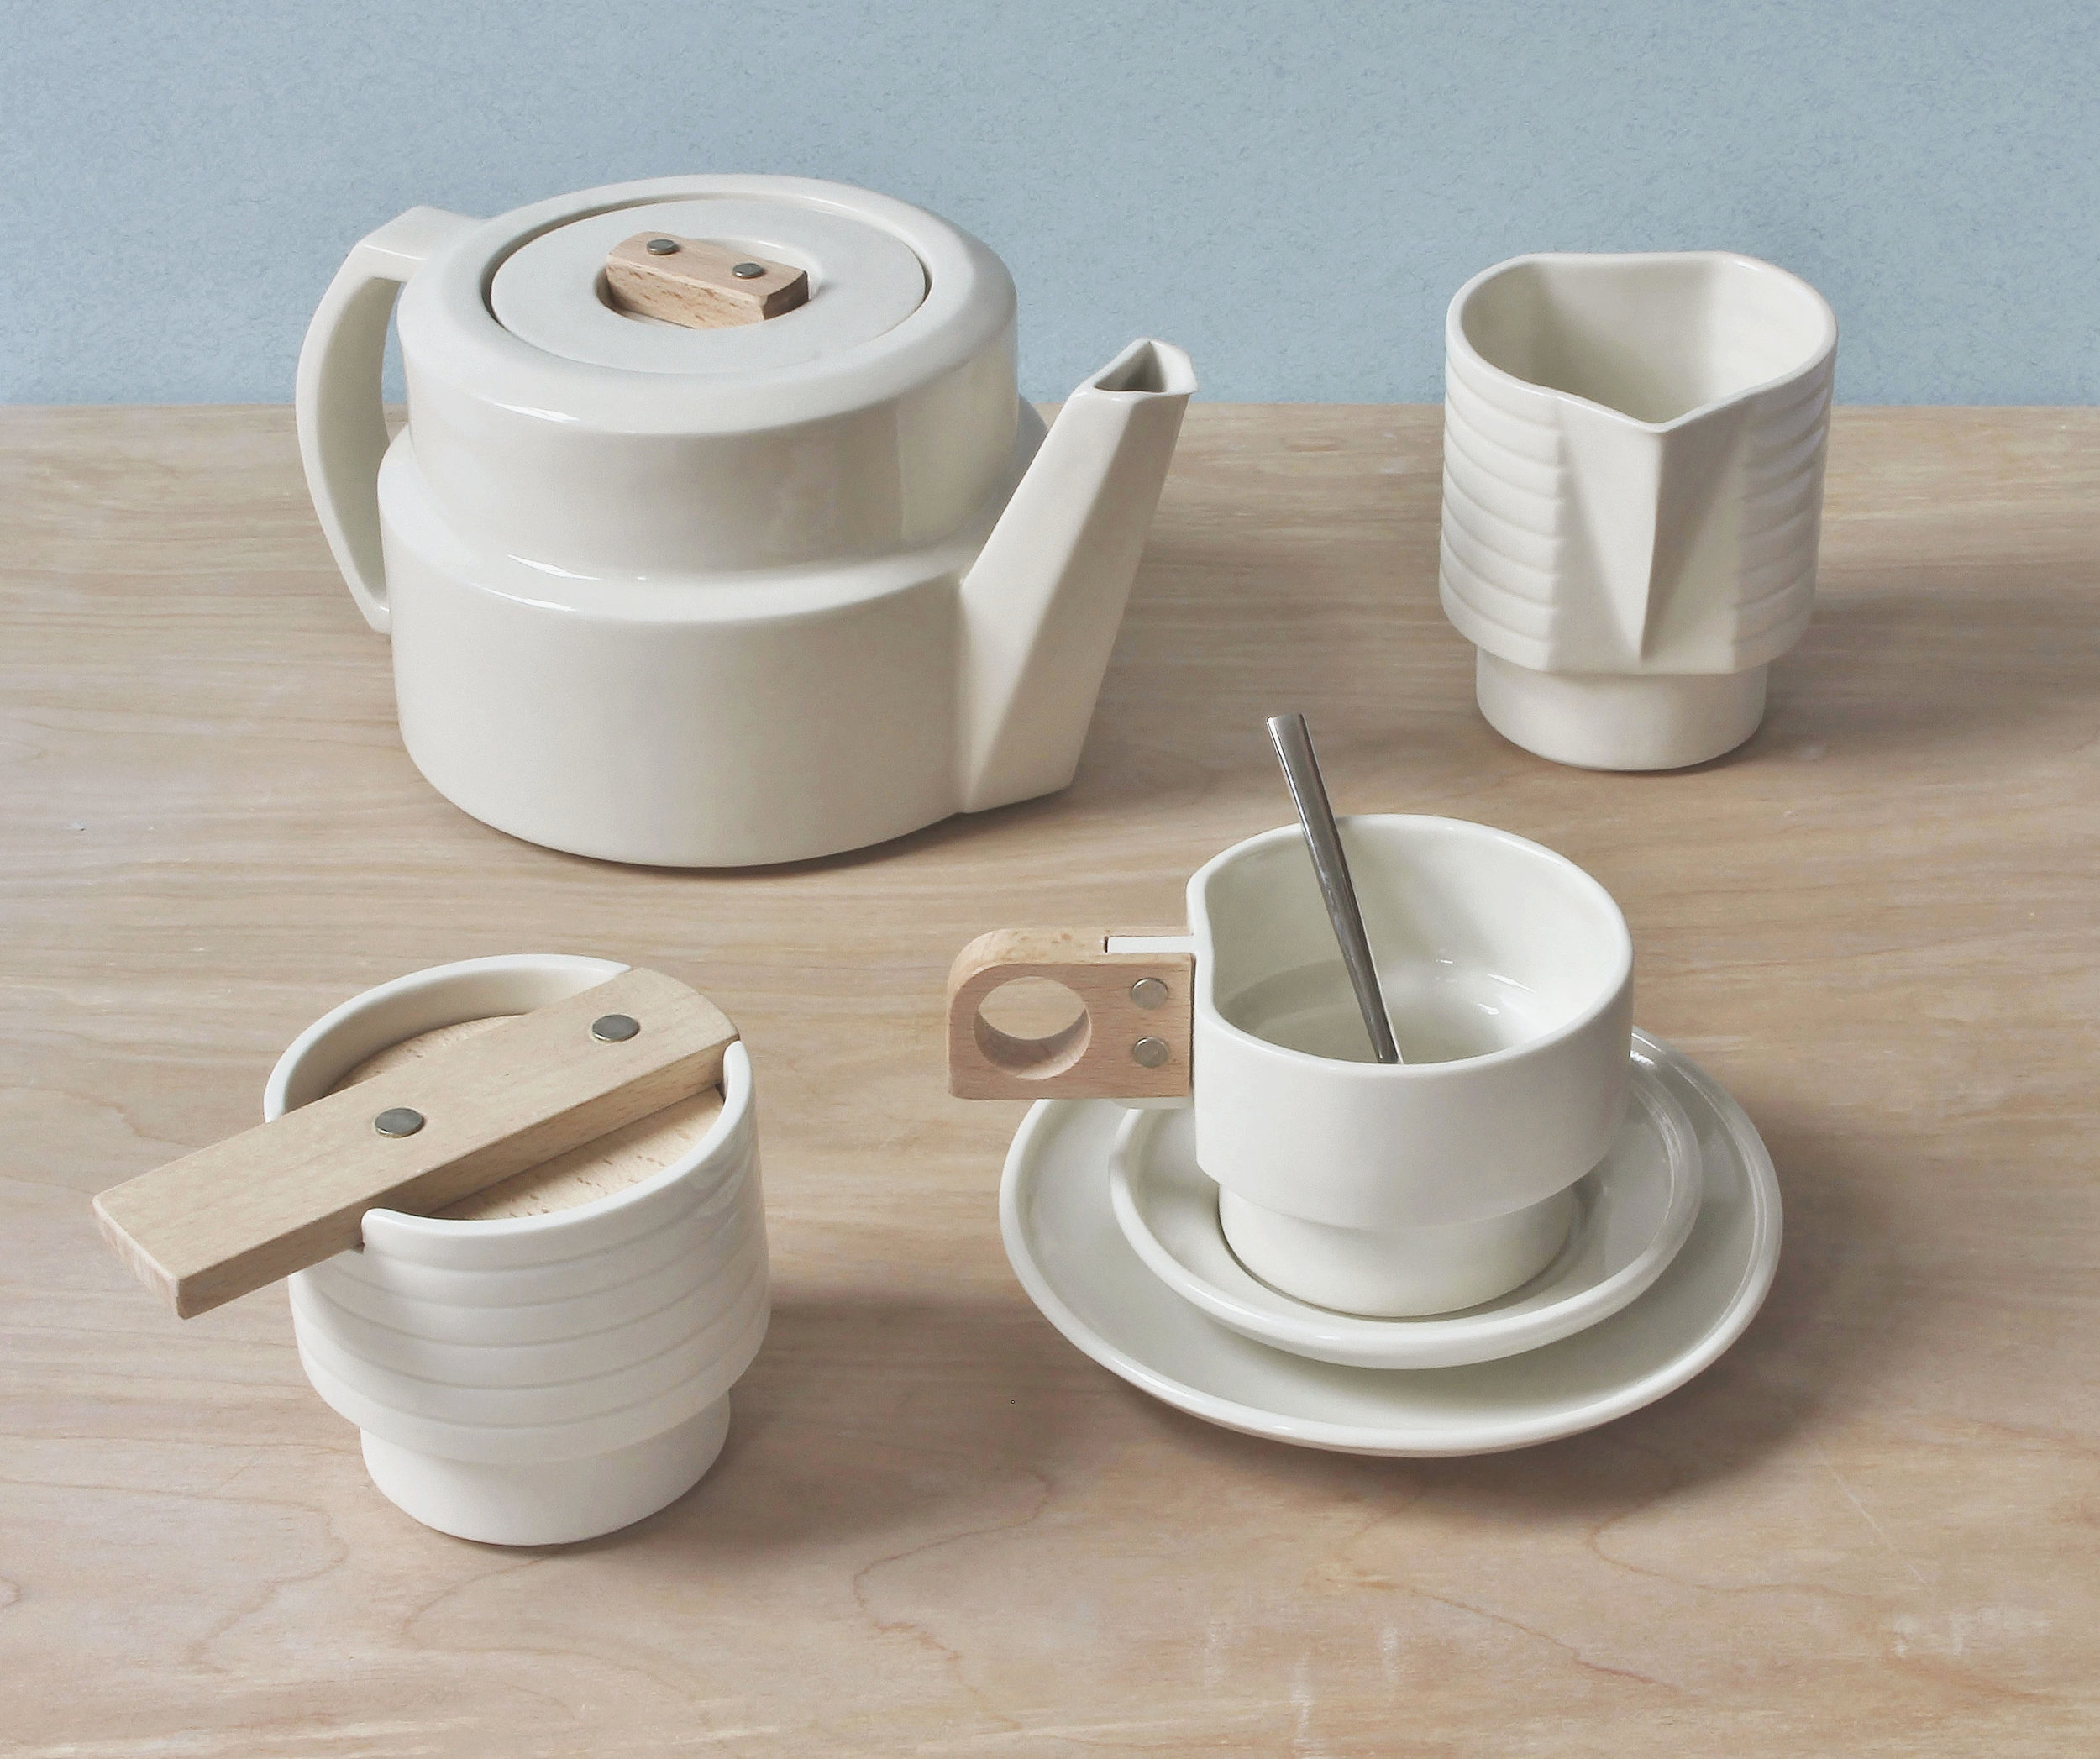 Atro-city collection in white by Emma Johnson